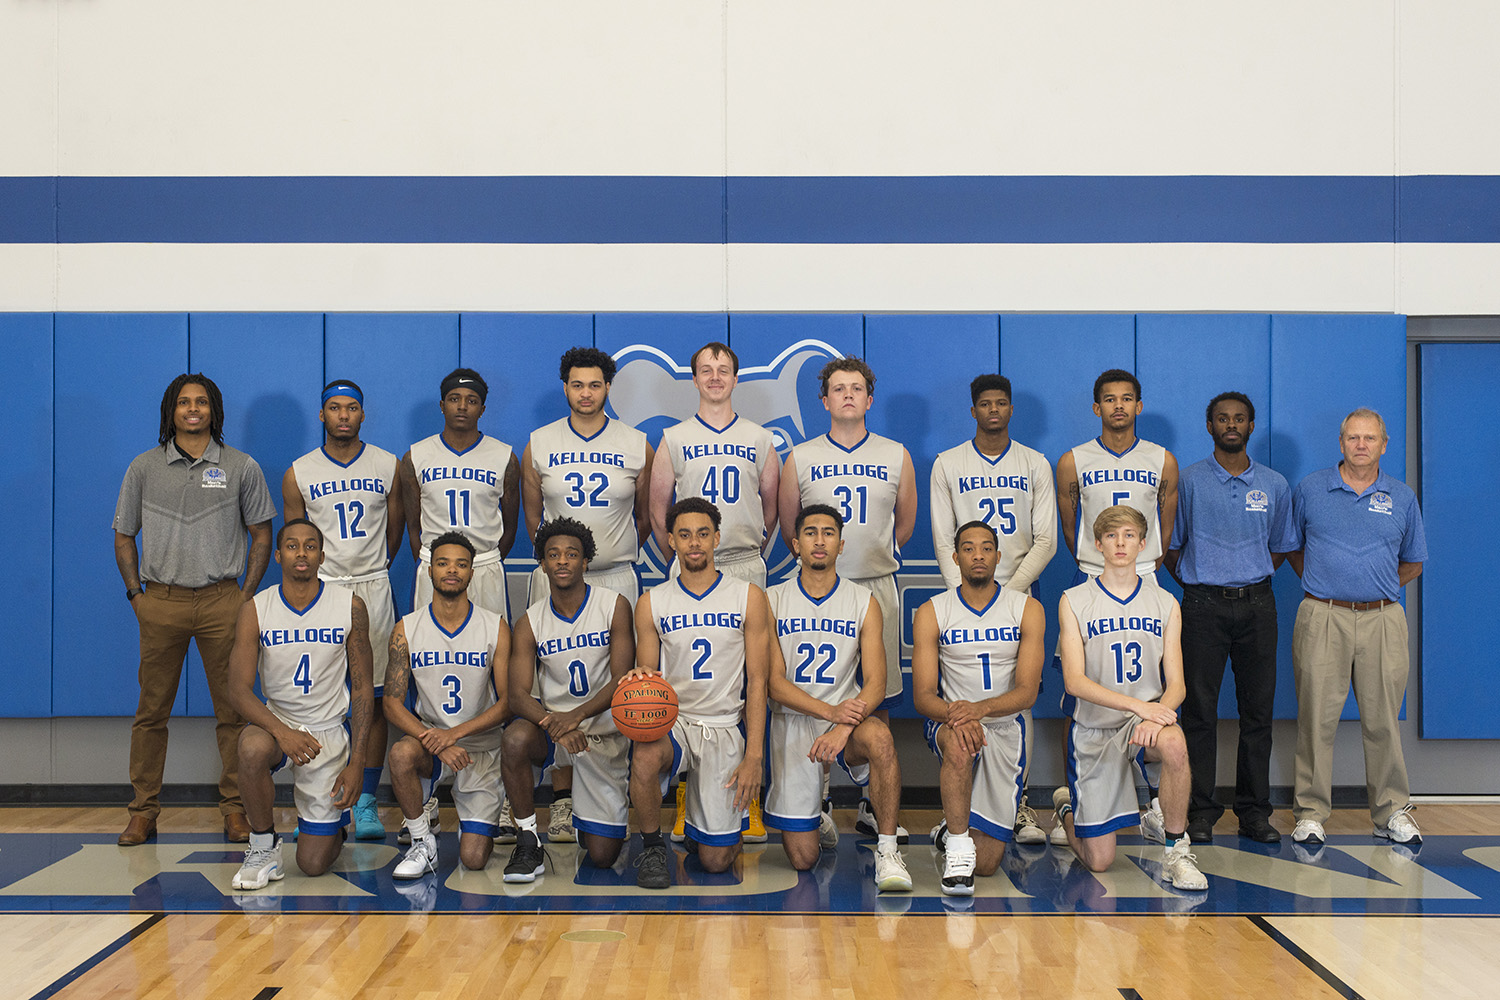 KCC's 2019-20 men's basketball team.